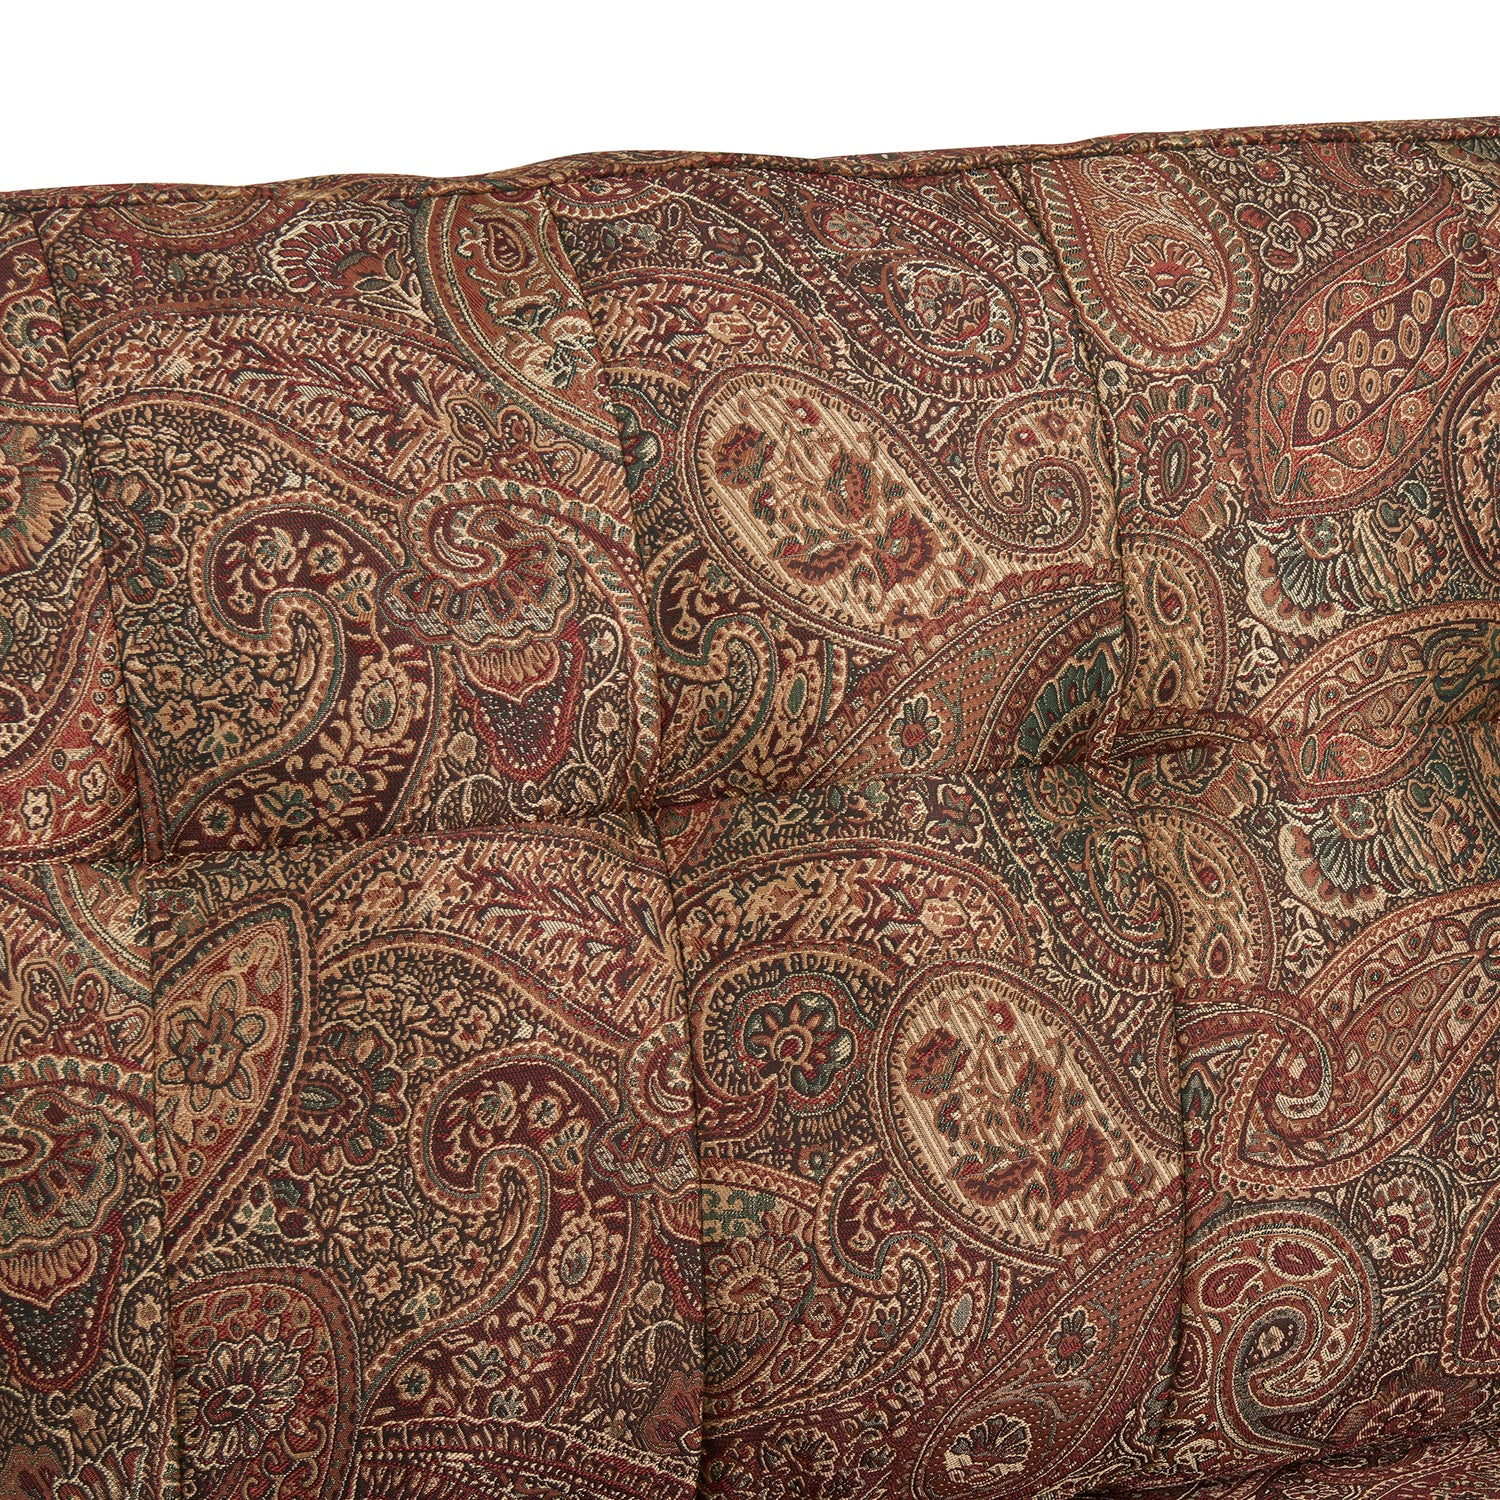 Elegant Handy Living Victoria SoFast Sofa In A Mix Of Paisley Fabric And Saddle  Brown Distressed Faux Leather   Free Shipping Today   Overstock   23053575